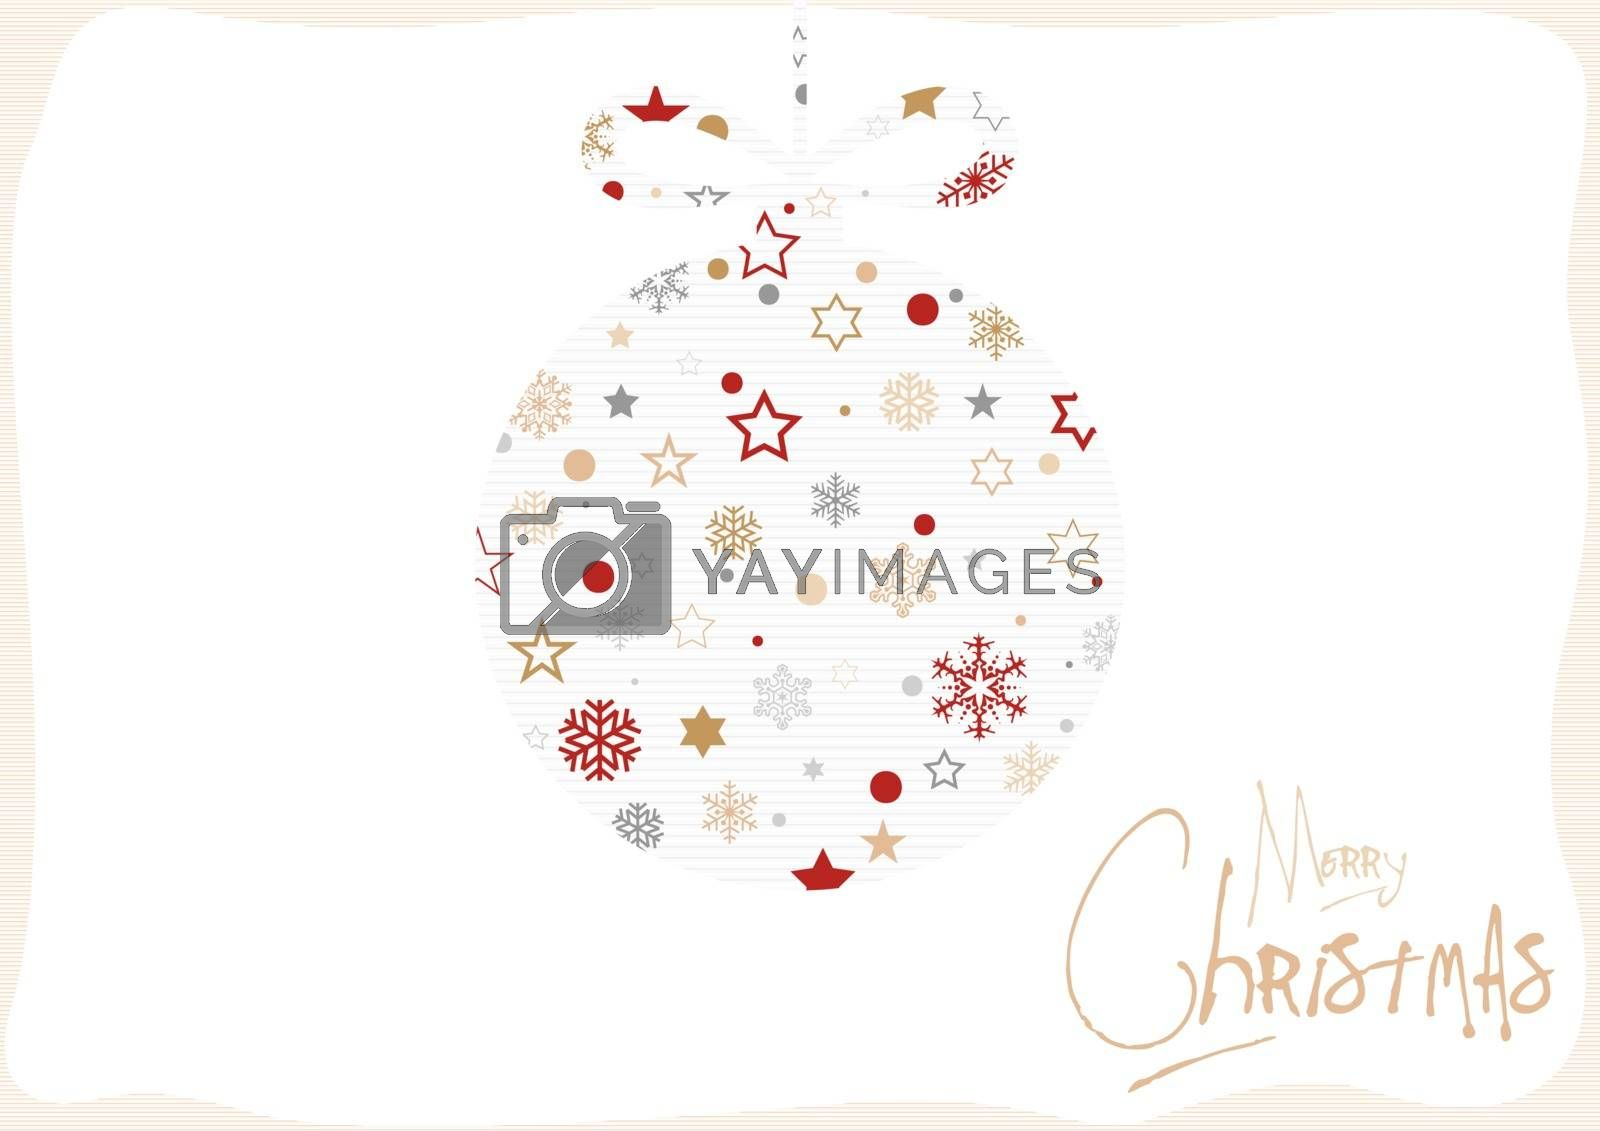 Xmas Card with Decorative Pattern in the Shape of a Christmas Ball - Background Illustration, Vector